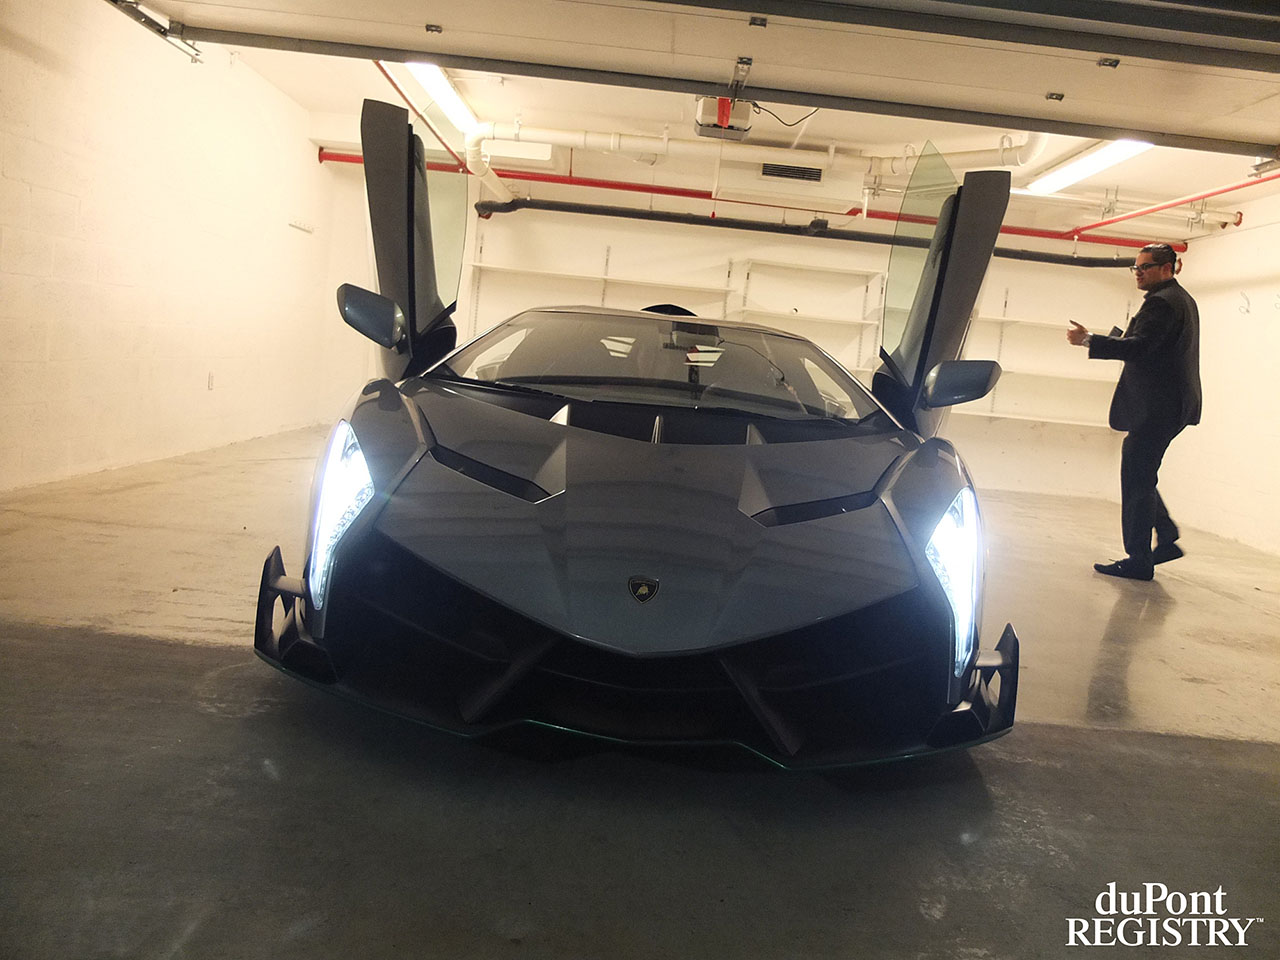 Looking like a predator ... the Lamborghini Veneno during delivery in Miami